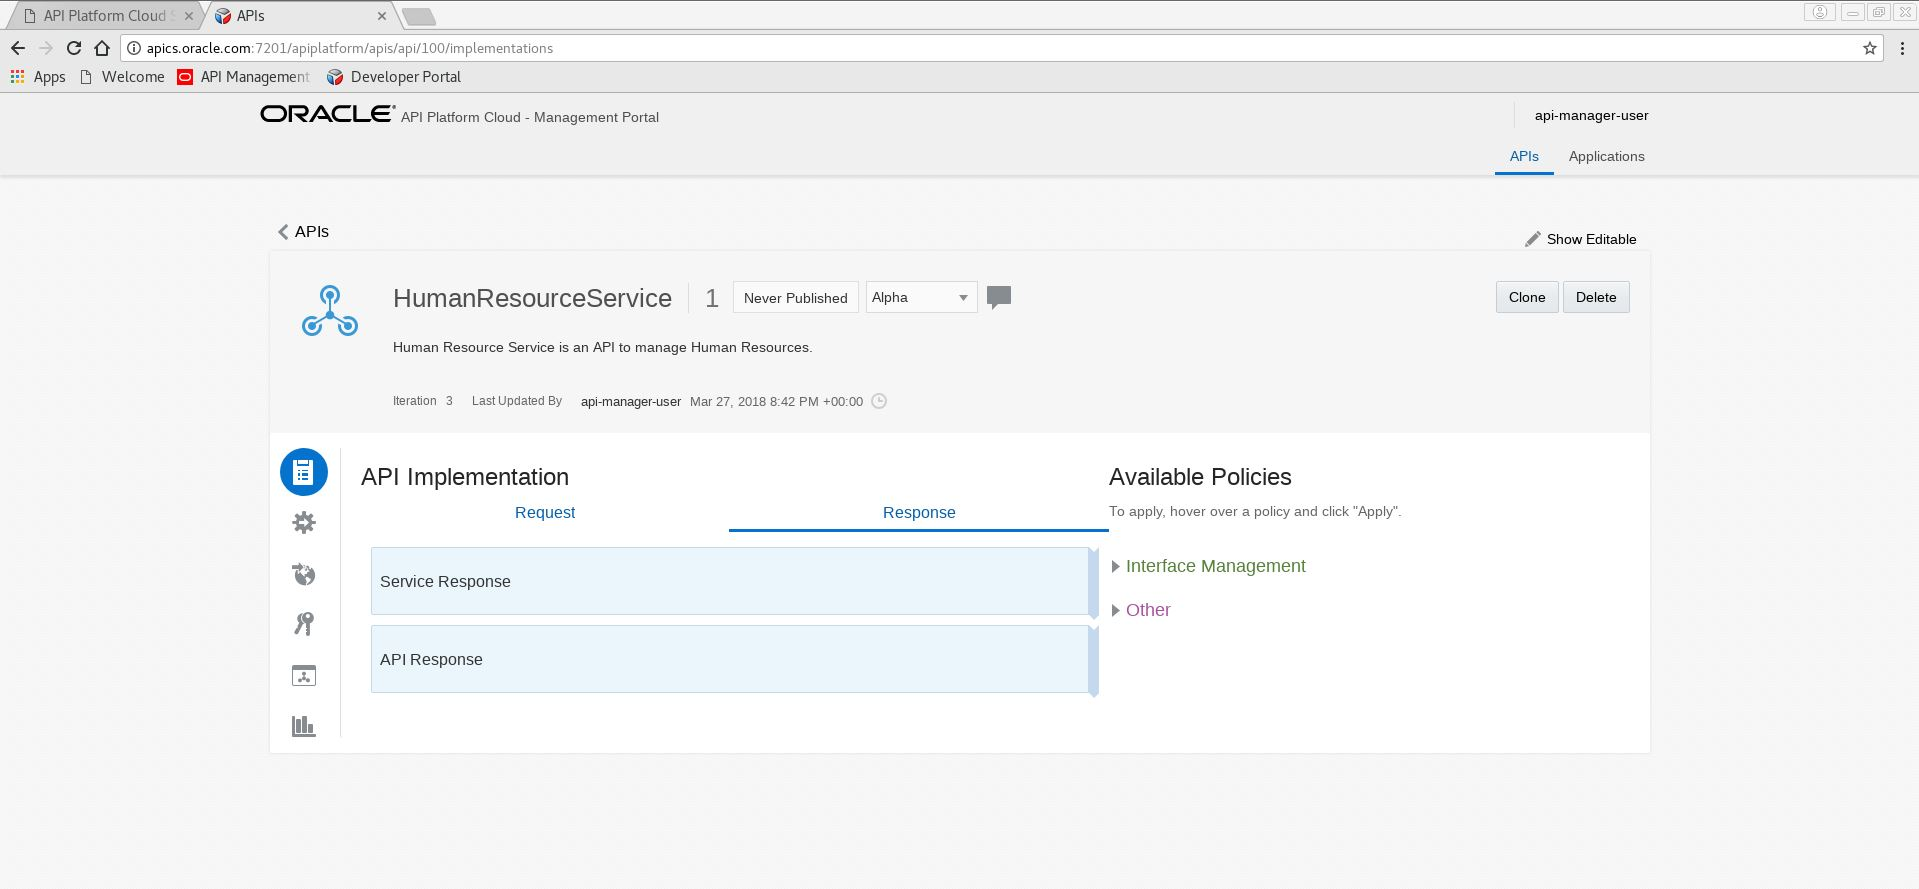 Oracle API Platform Cloud Service: using the Management Portal and